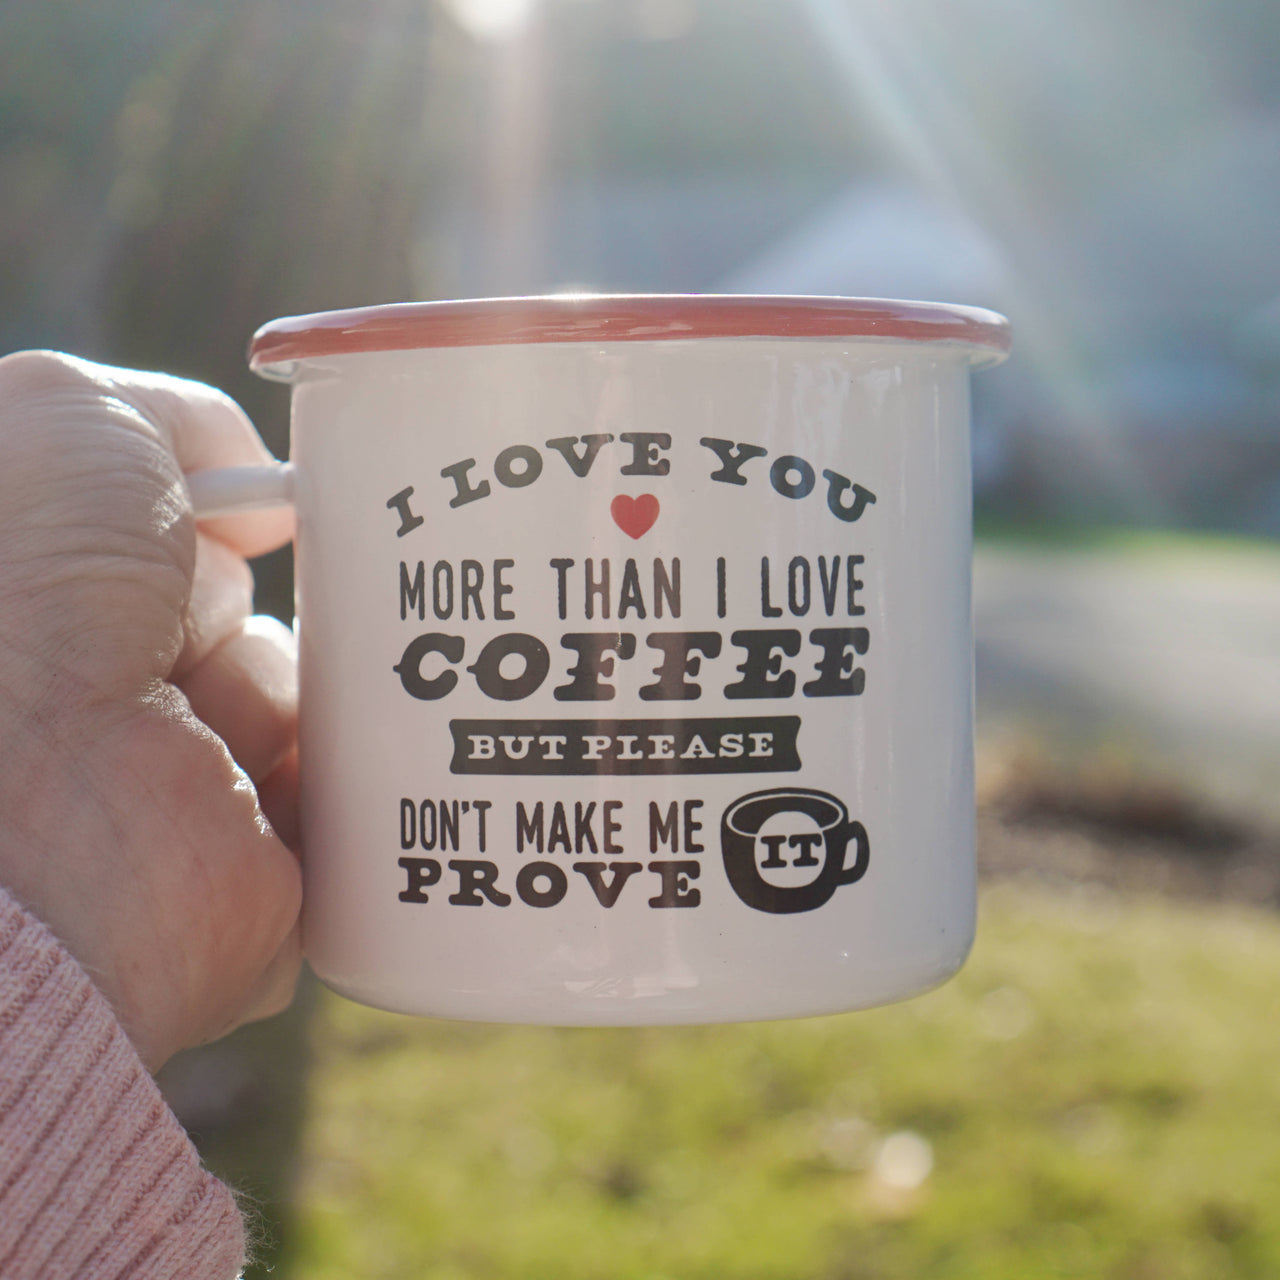 Love You More than Coffee - But Don't Make Me Prove it! Funny Couples Camping Mug